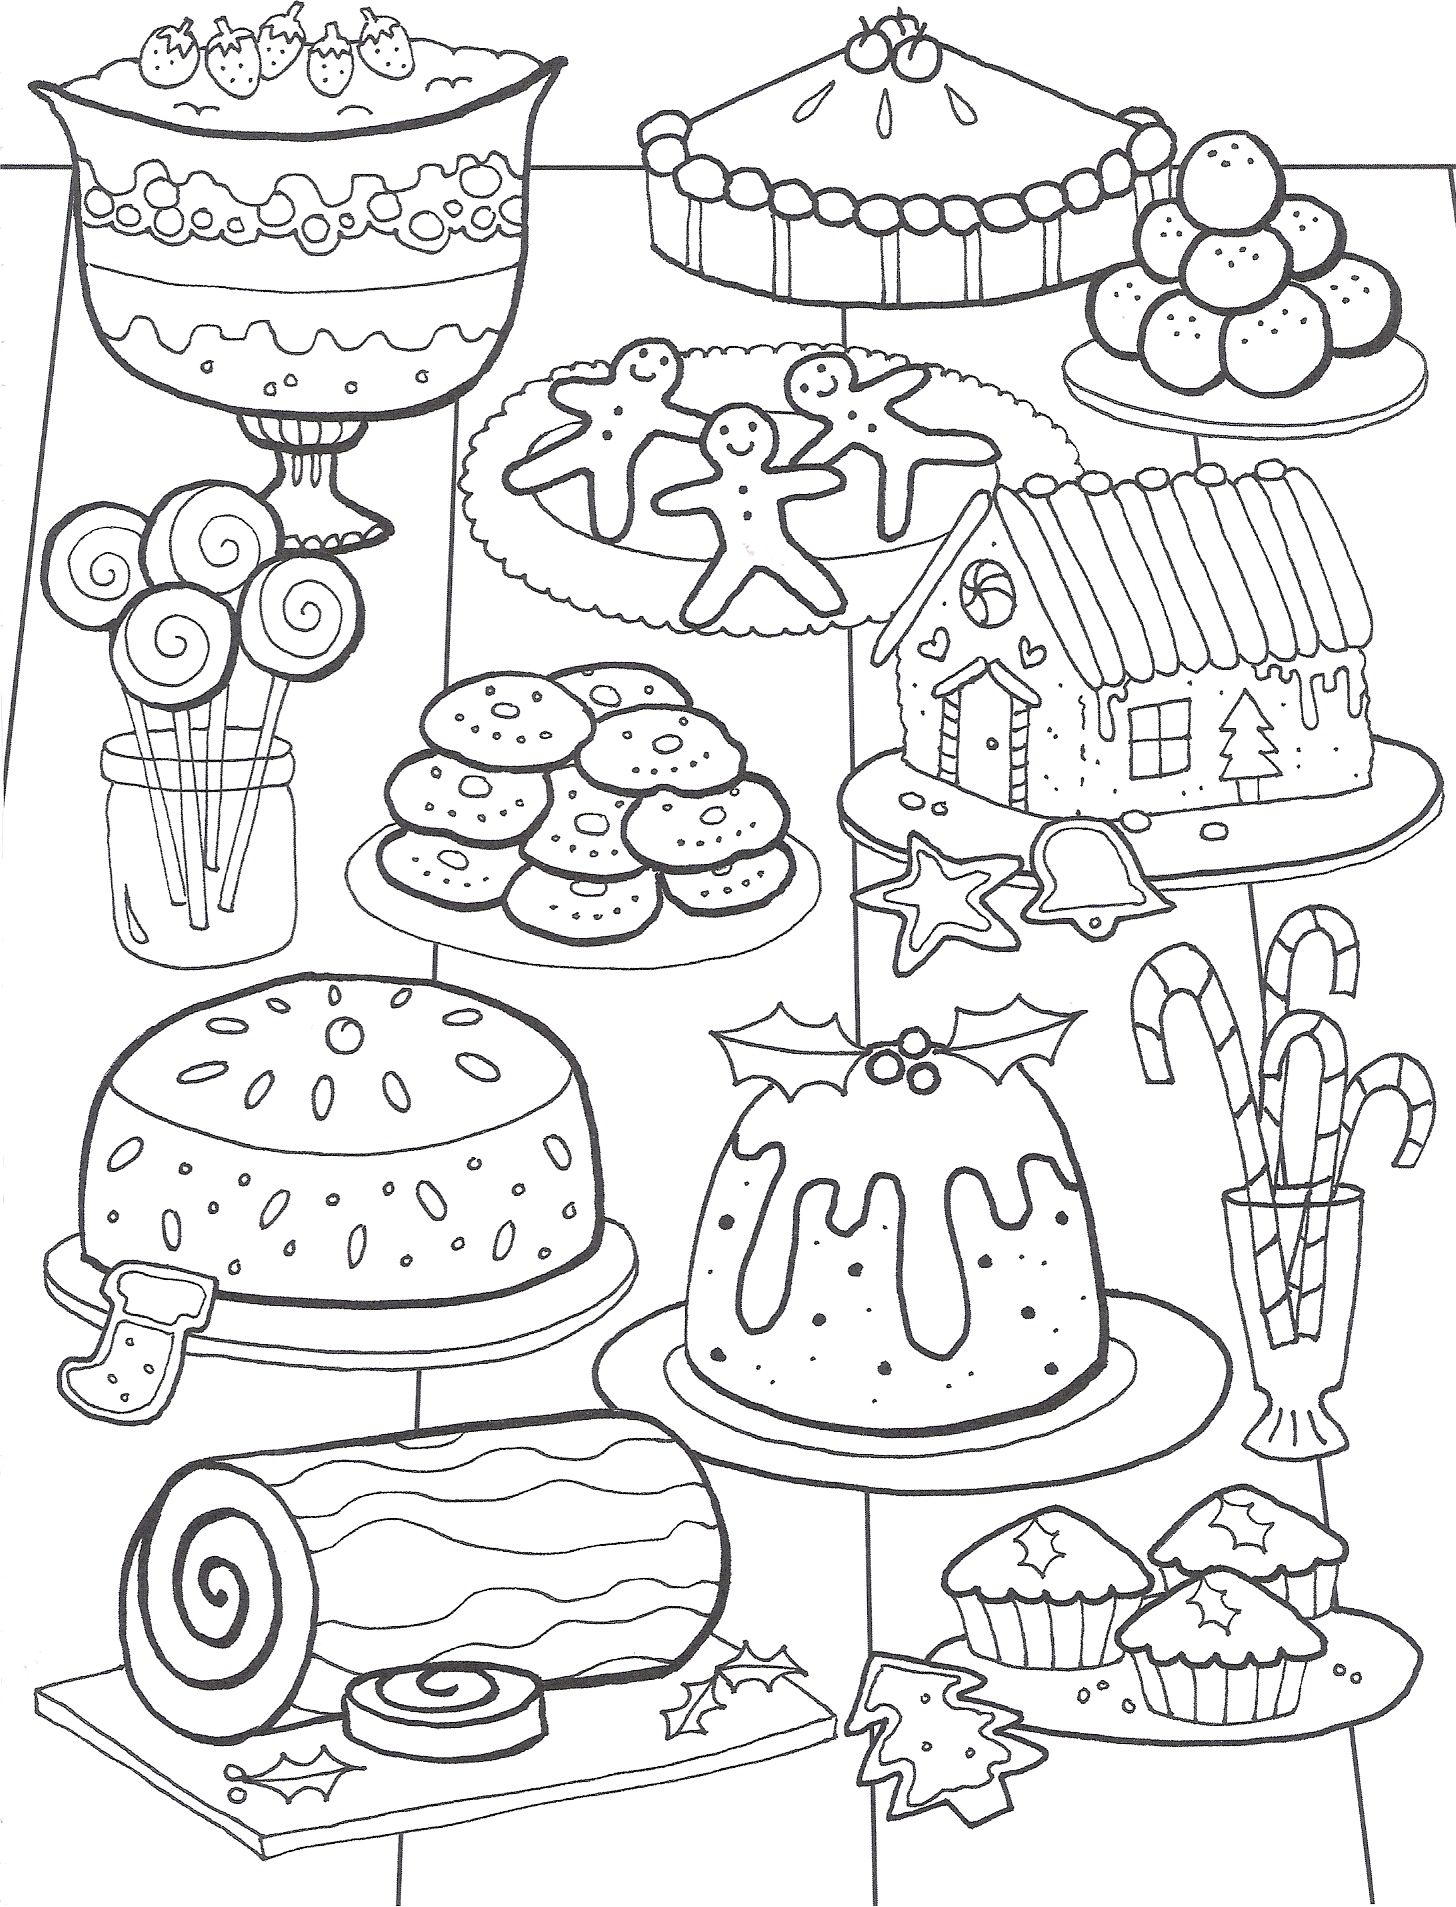 Coloring pages food - Coloriage Adulte Art Therapie Coloring Therapy Pinterest Coloring Print And Coloring Books